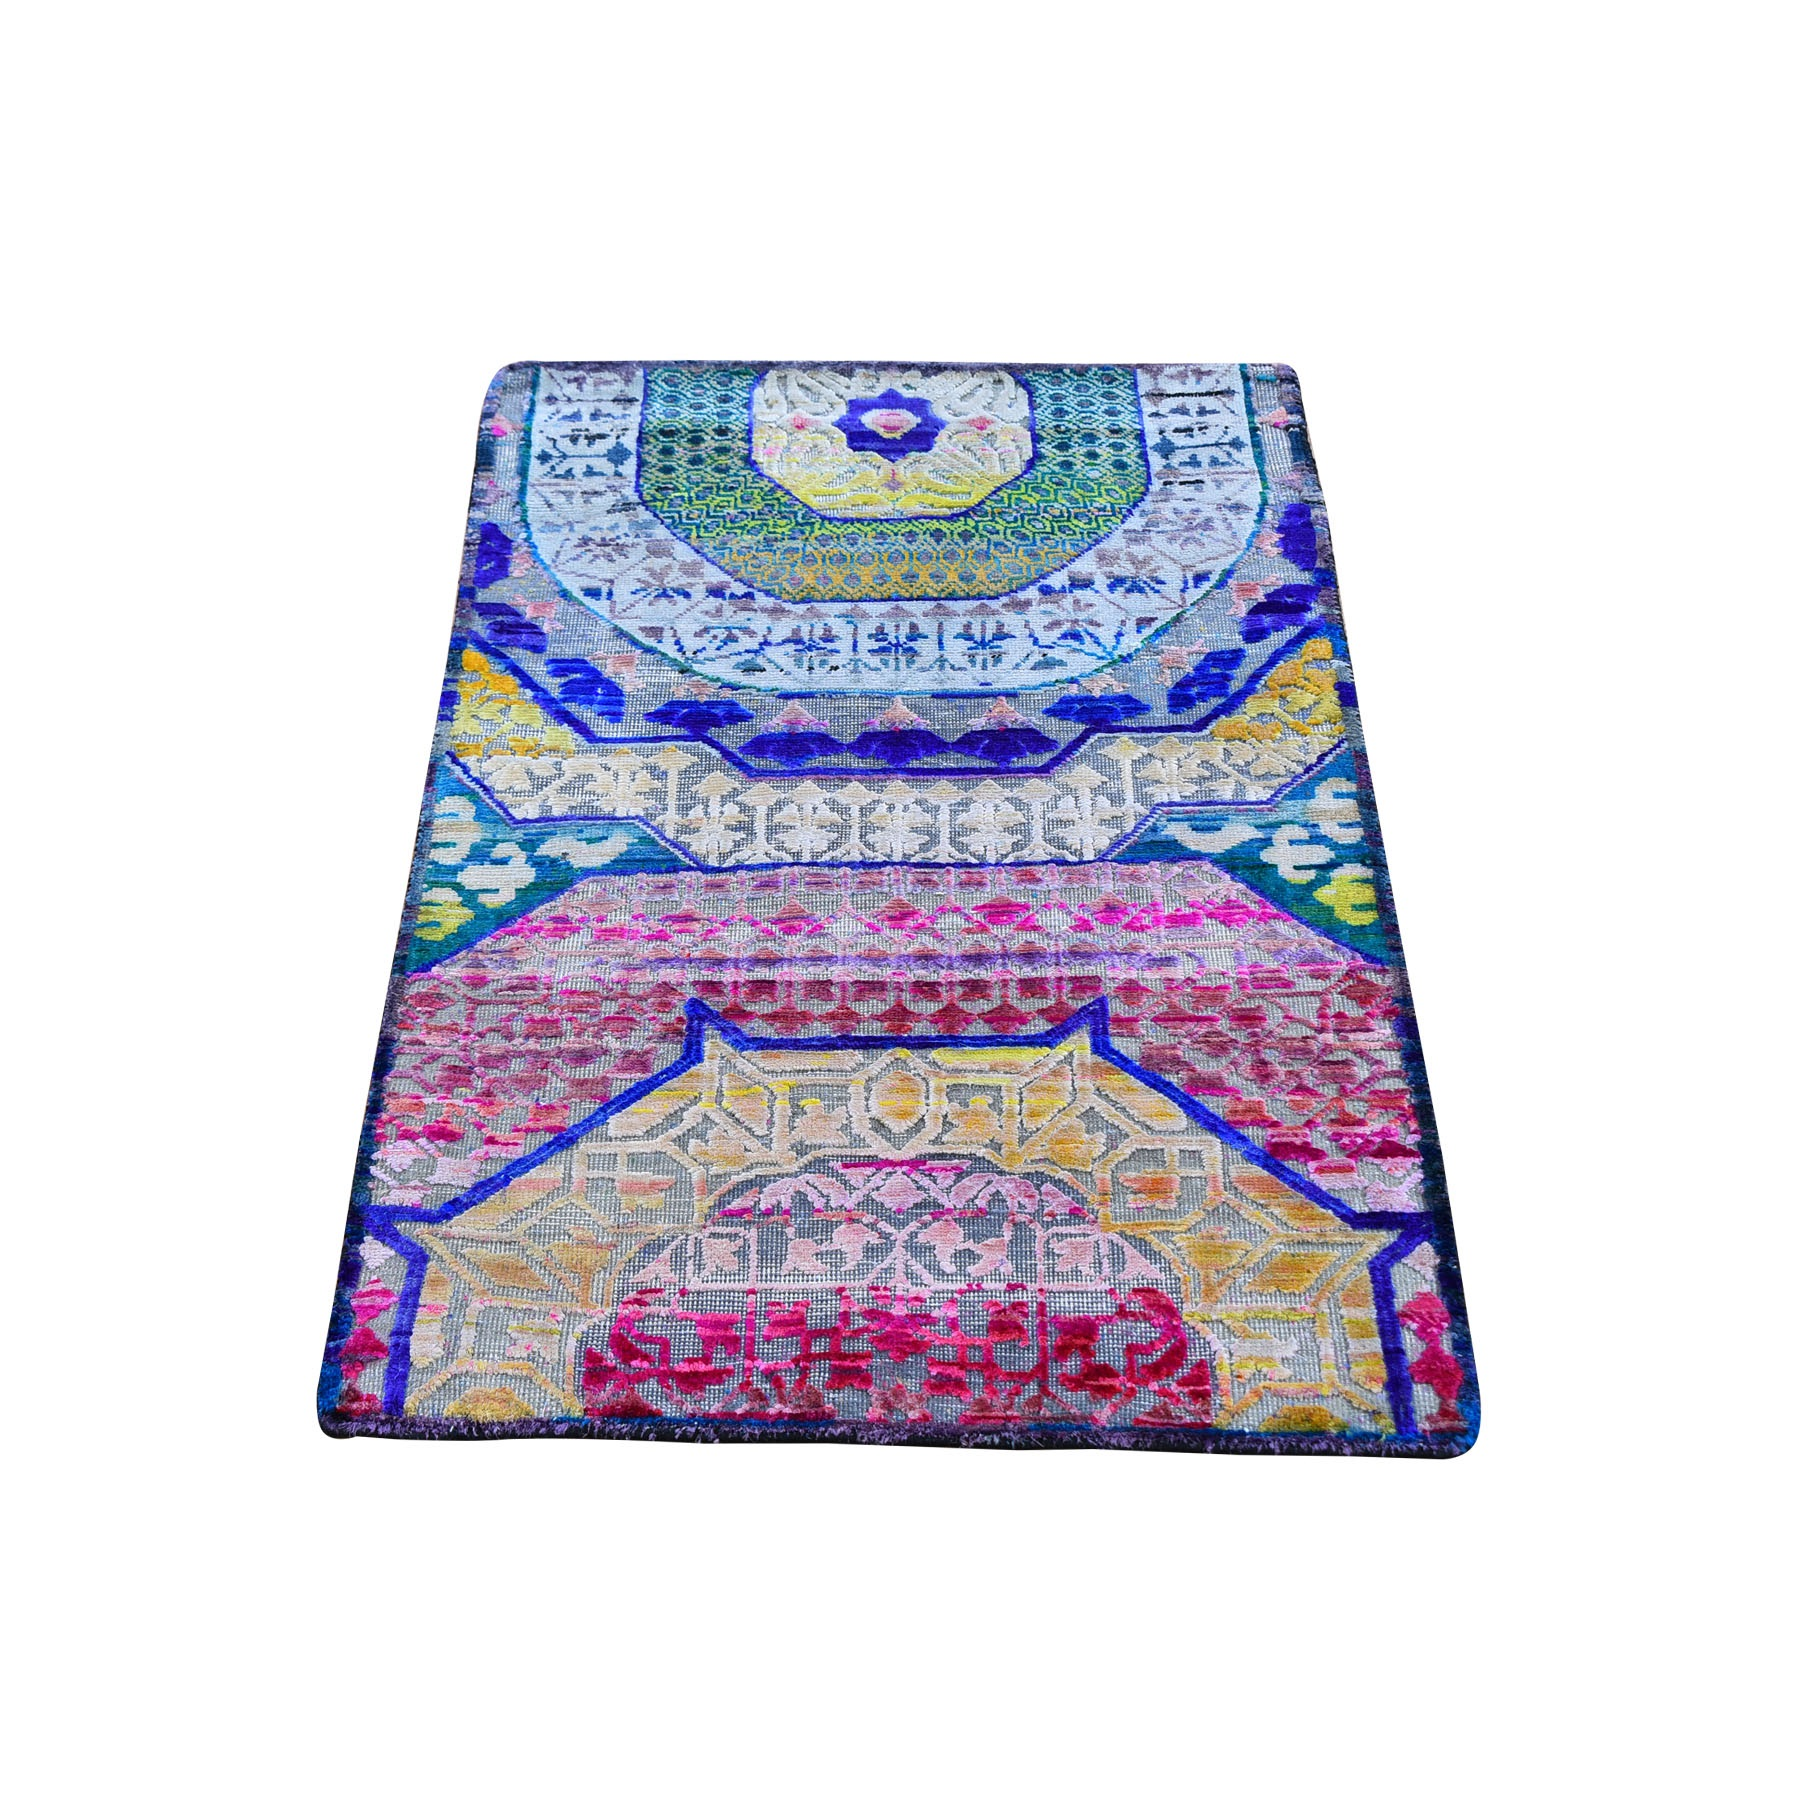 2'x3' Colorful Sari Silk with Textured Wool Hand Knotted Mamluk Design Oriental Rug